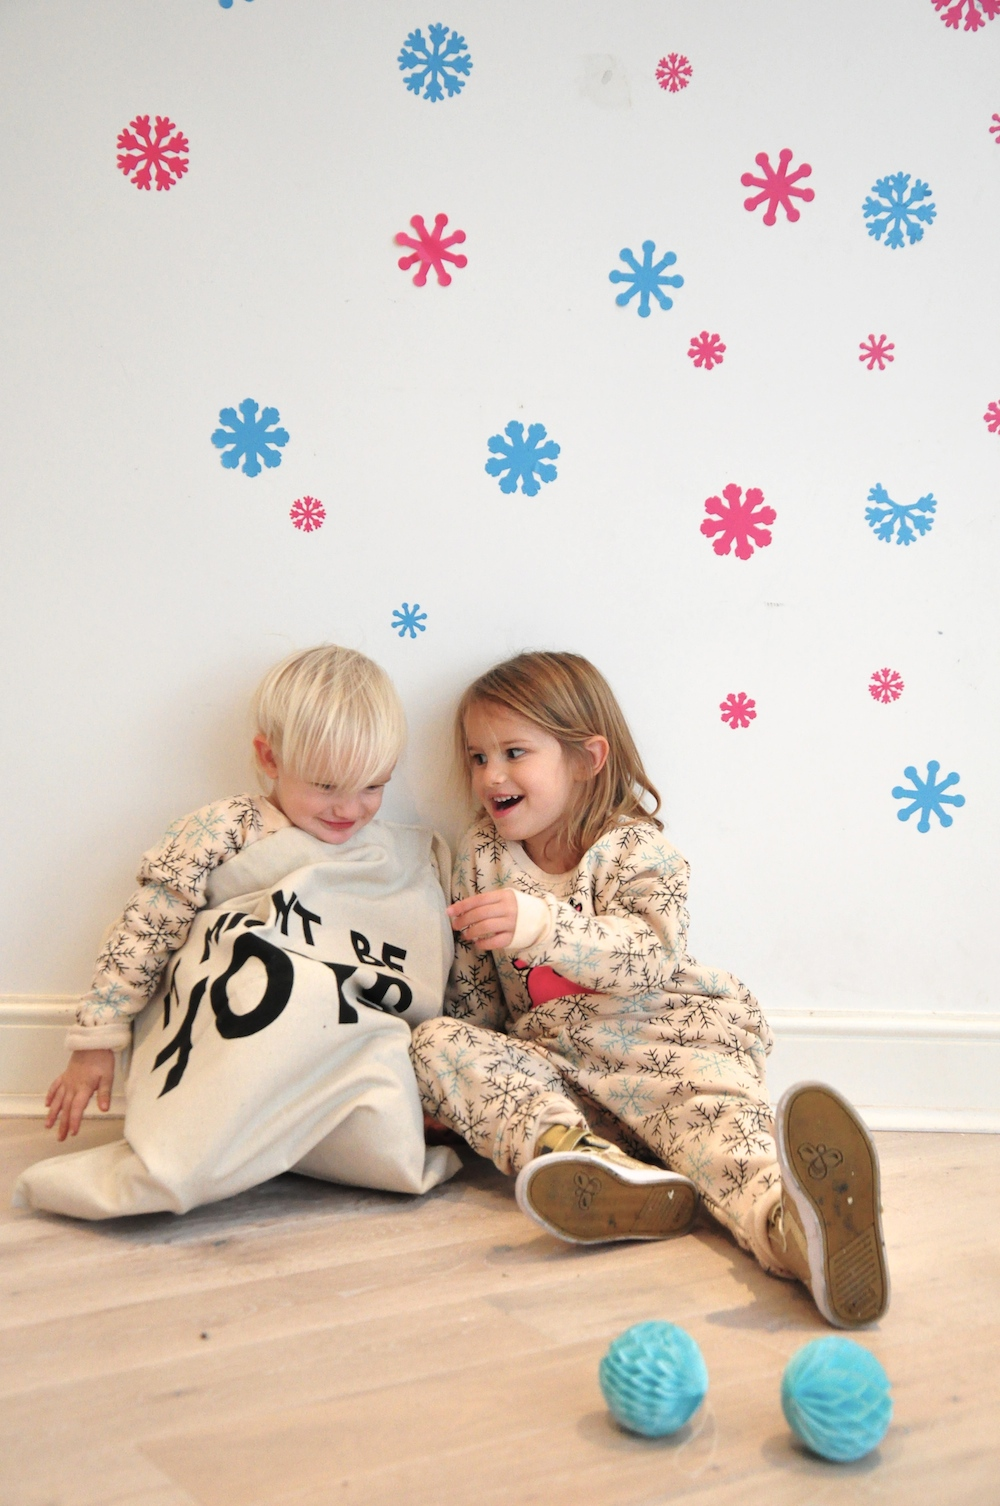 Gardner_and_the_gang_harrods_miniharrods_Christmas_tellkiddo_kidsen_28